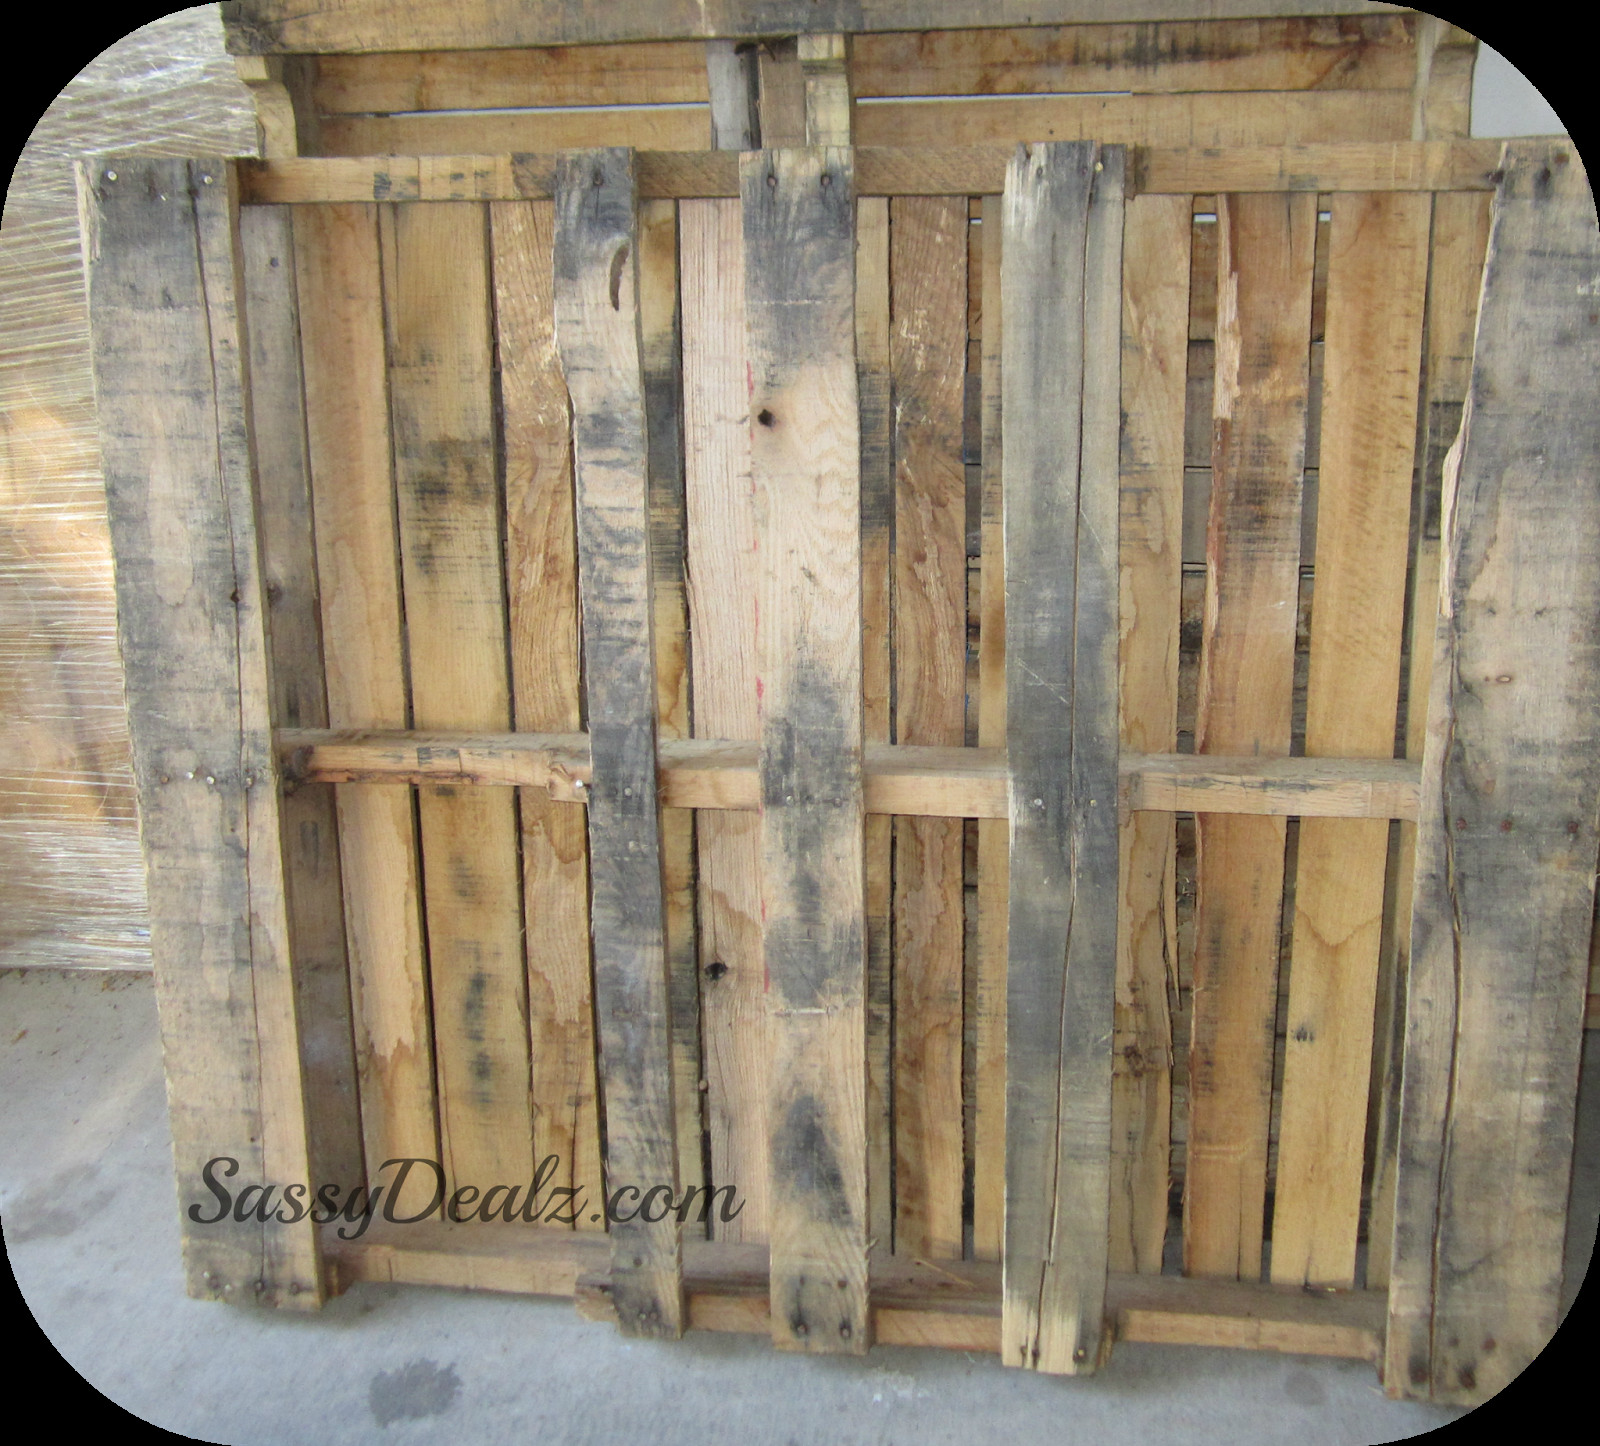 Best ideas about DIY Wood Pallets . Save or Pin DIY How To Make A Wine or Magazine Rack Out of a Wood Now.